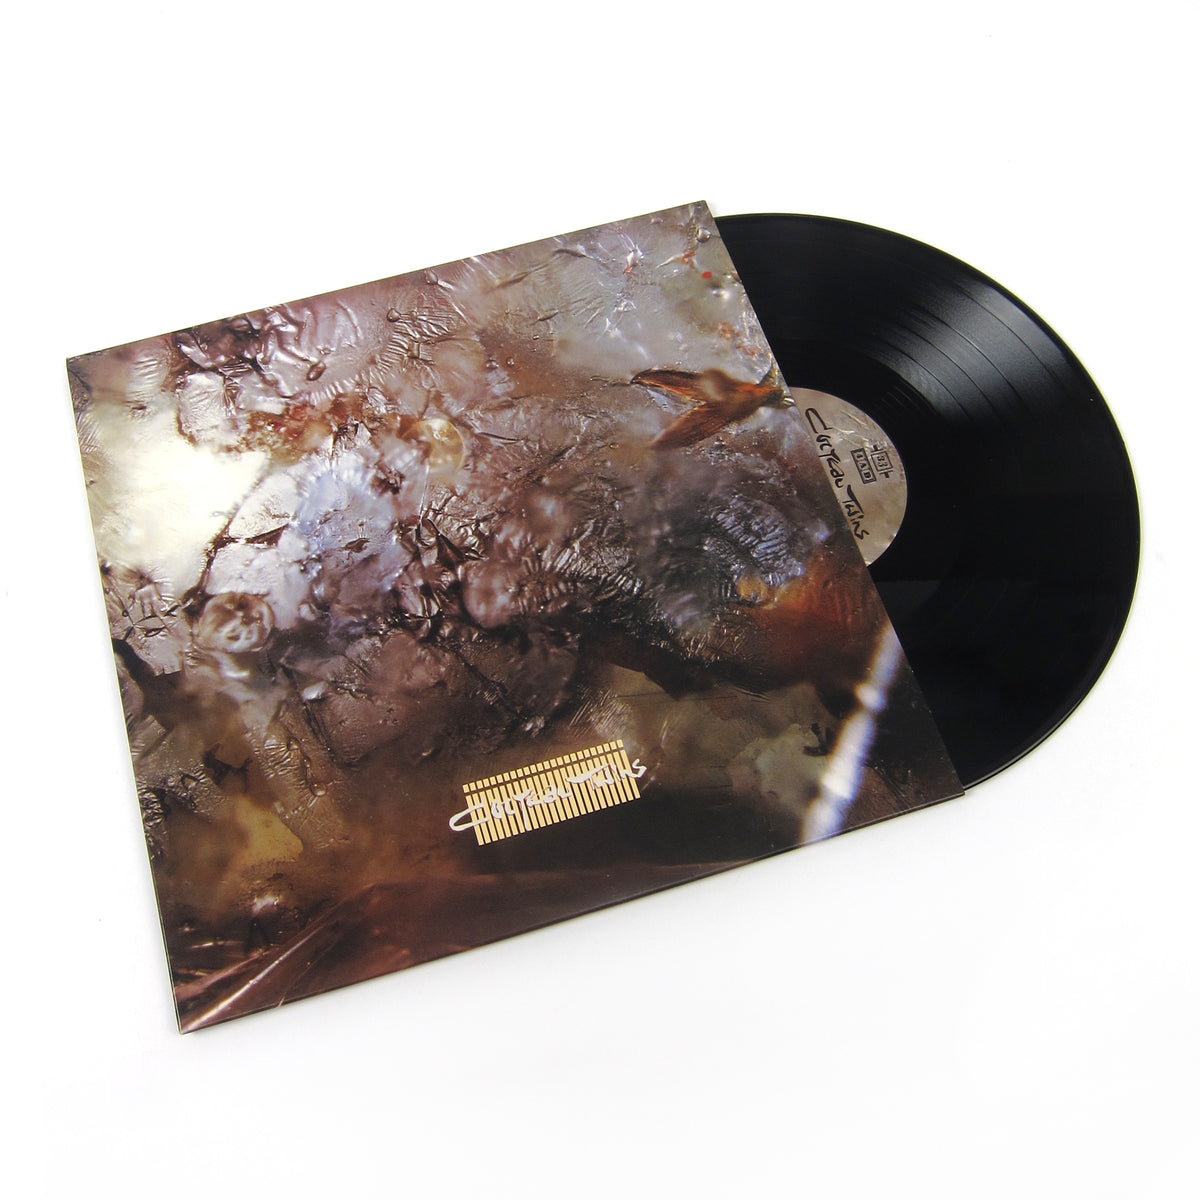 Cocteau Twins: Head Over Heels (180g) Vinyl LP